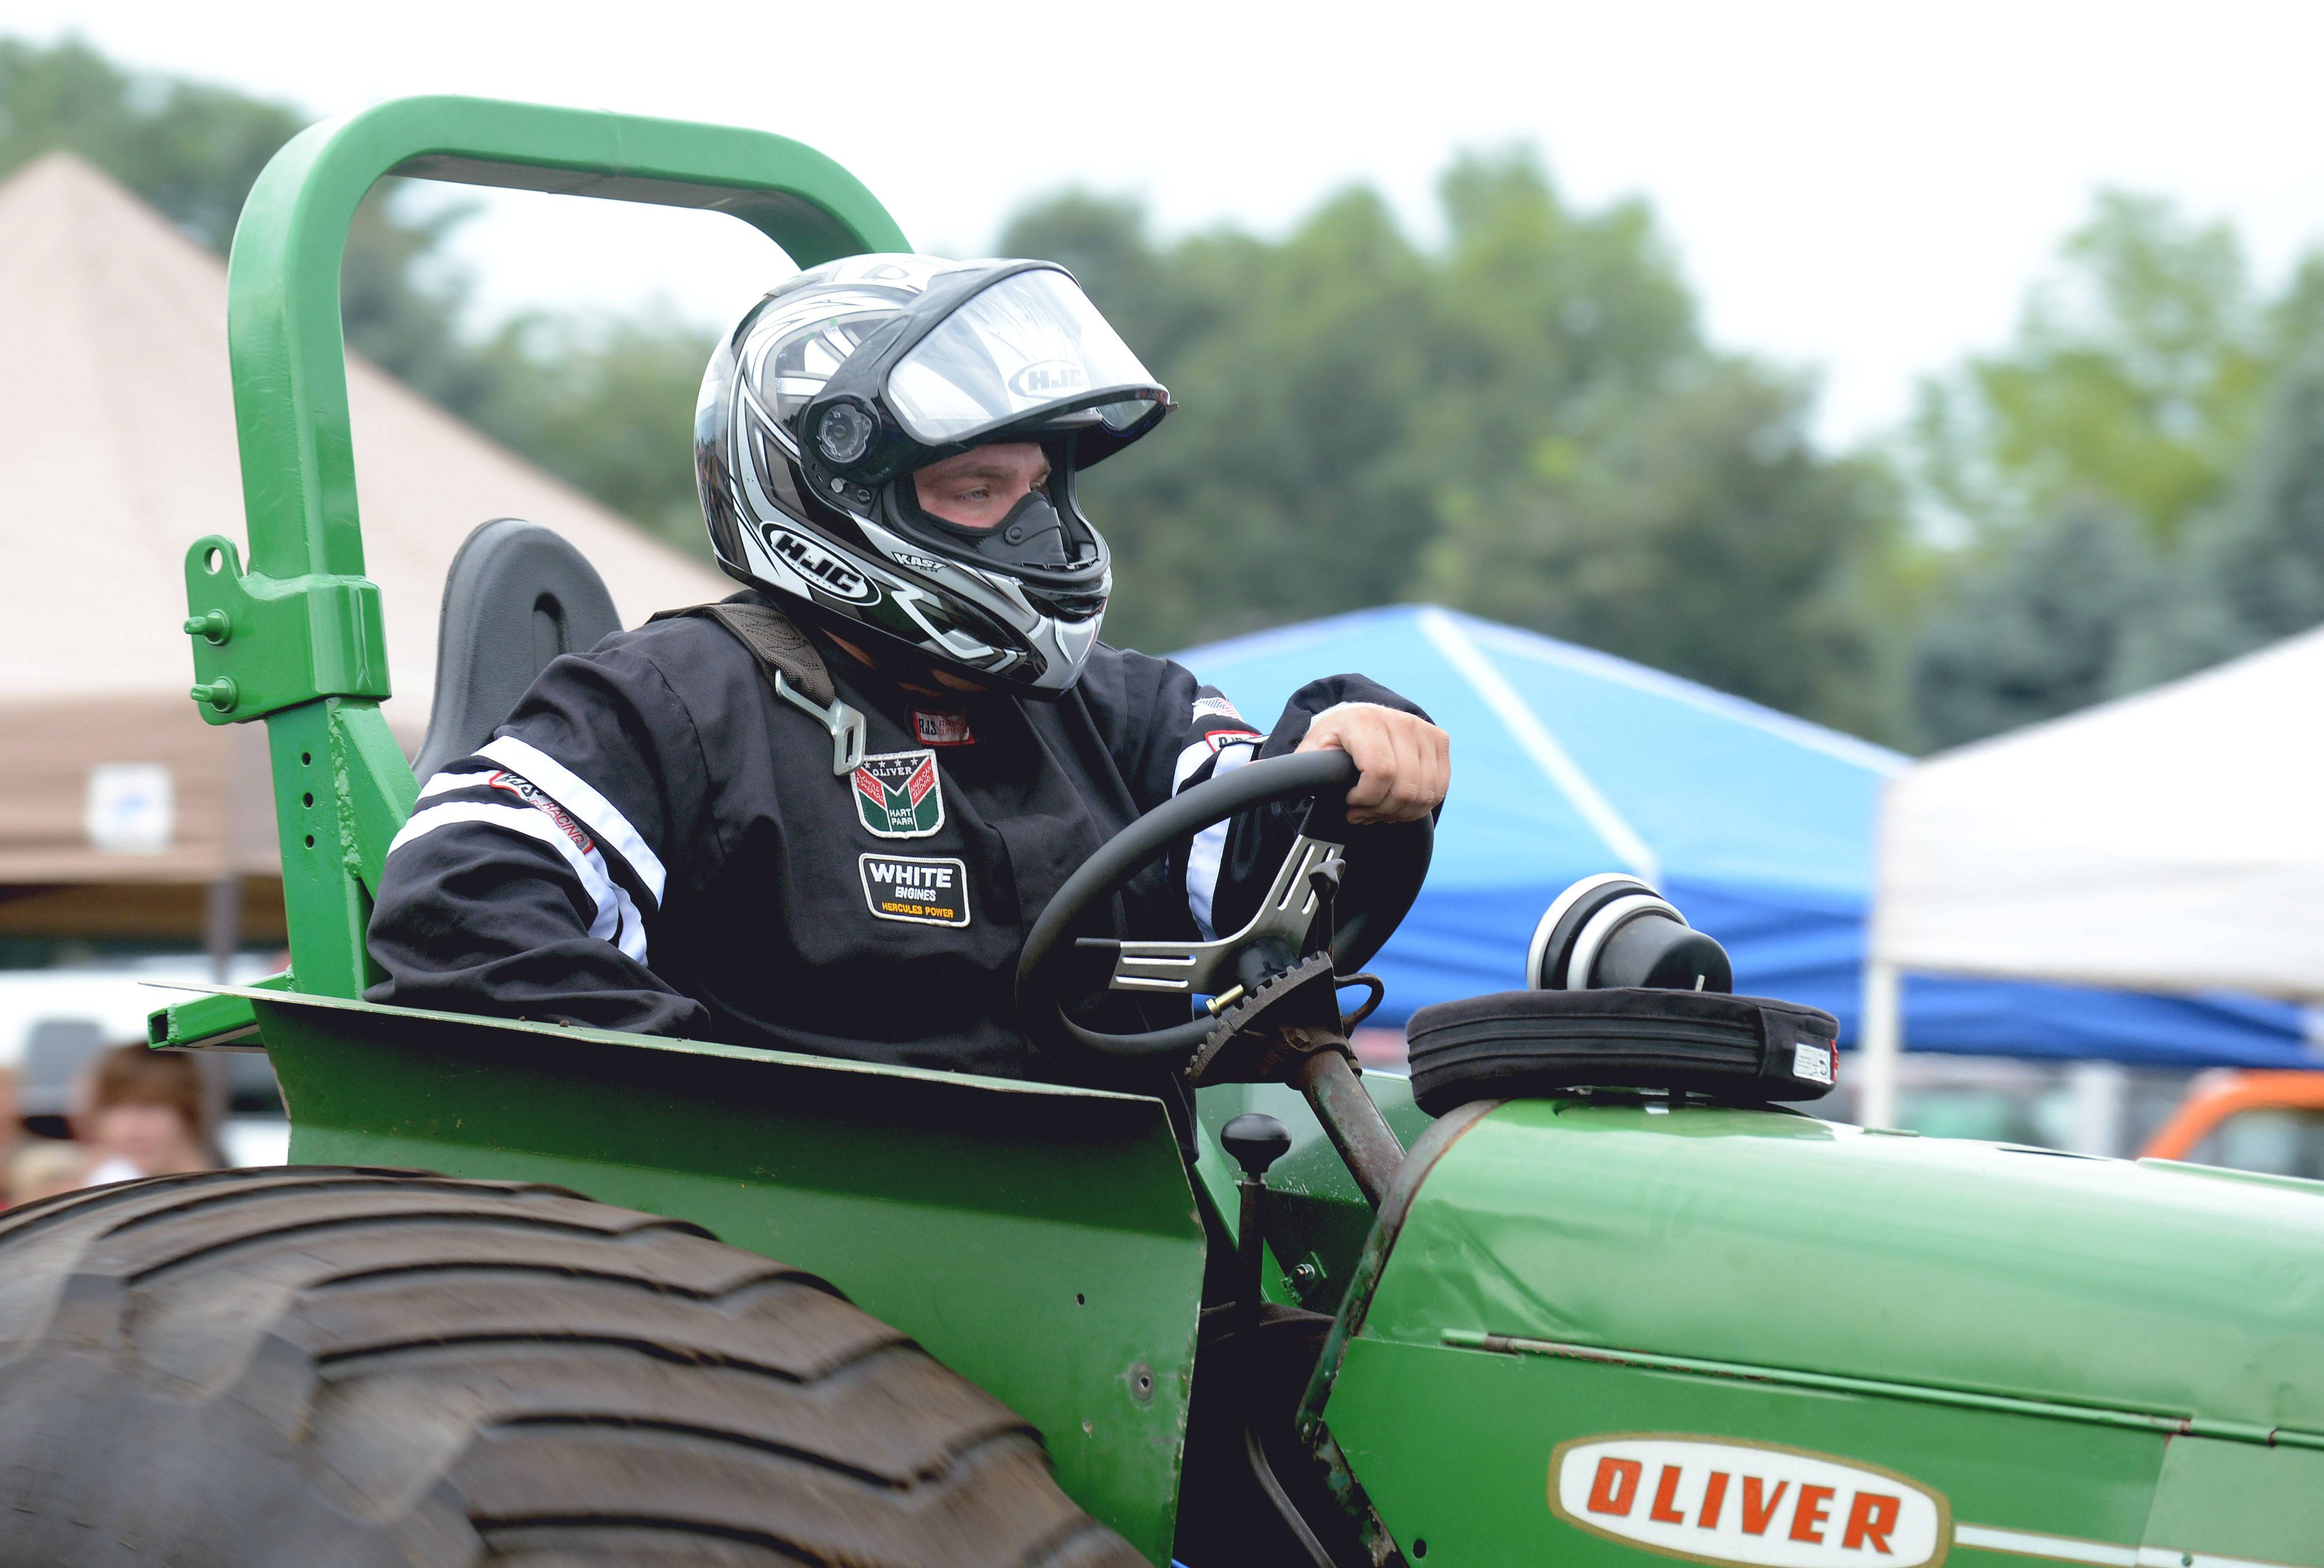 Mike Sauter of Tonica leaves the racetrack with his '58 Oliver Super 880 at the Elburn Days tractor pull on Saturday.